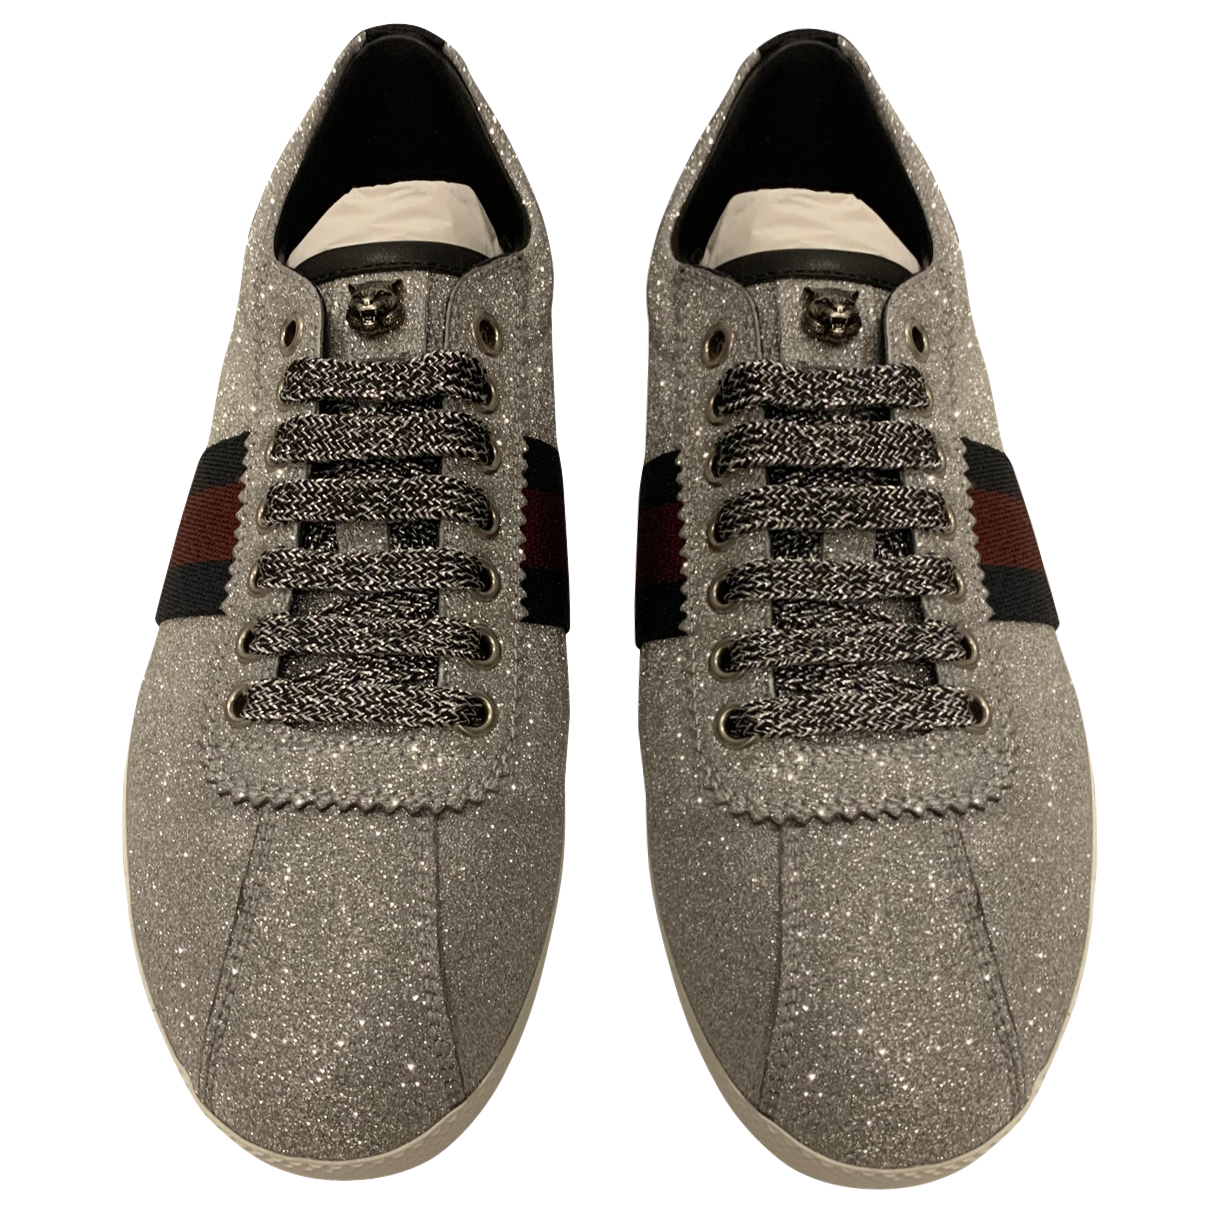 Gucci Ace Silver Glitter Trainers for Women 38 EU